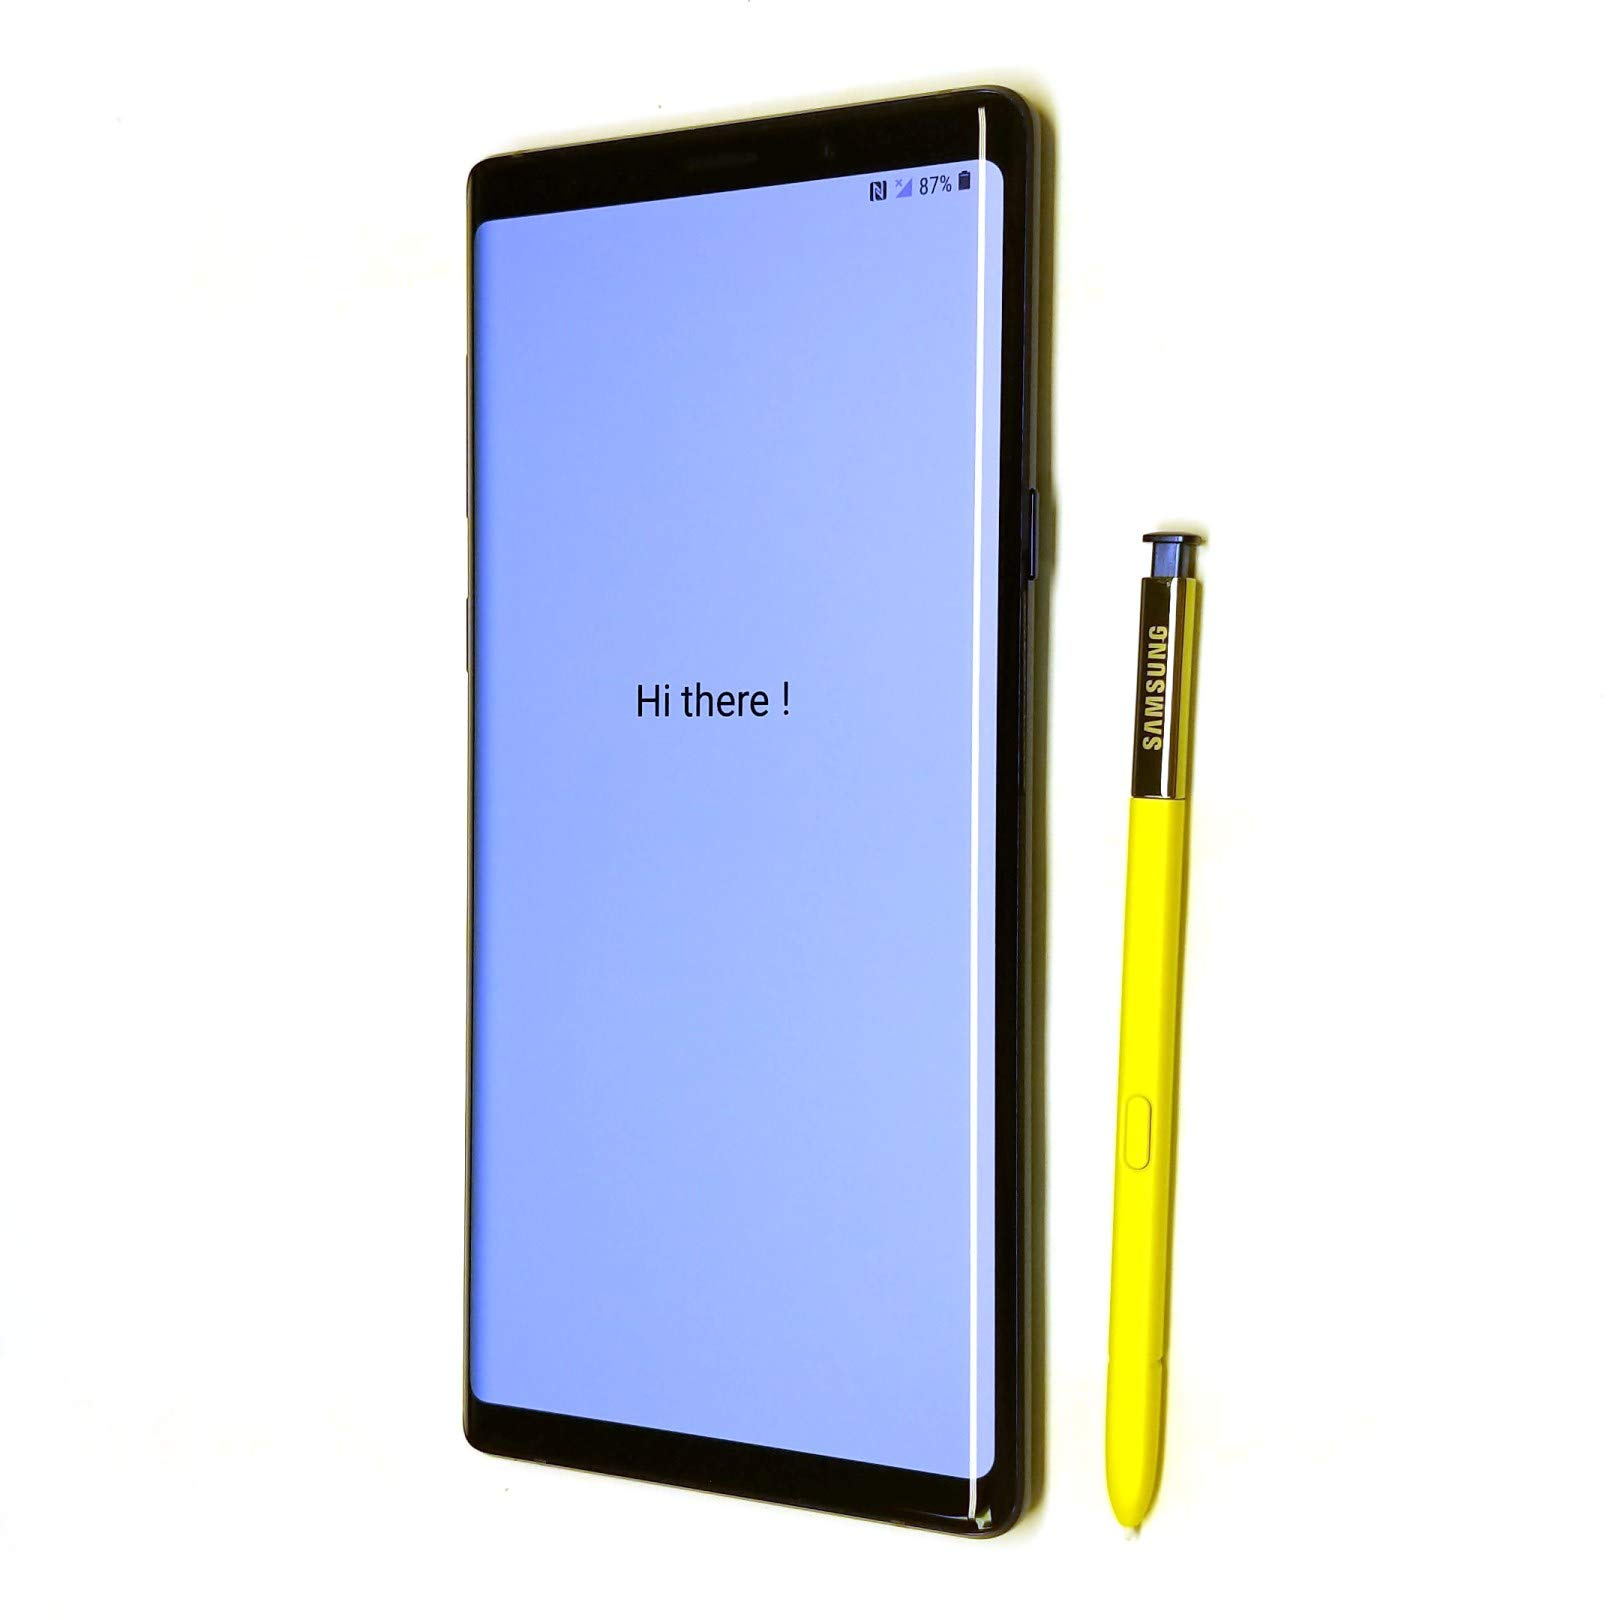 """Samsung Galaxy Note 9 Factory Unlocked Phone with 6.4"""" Screen and 128GB (U.S. Warranty), Ocean Blue"""